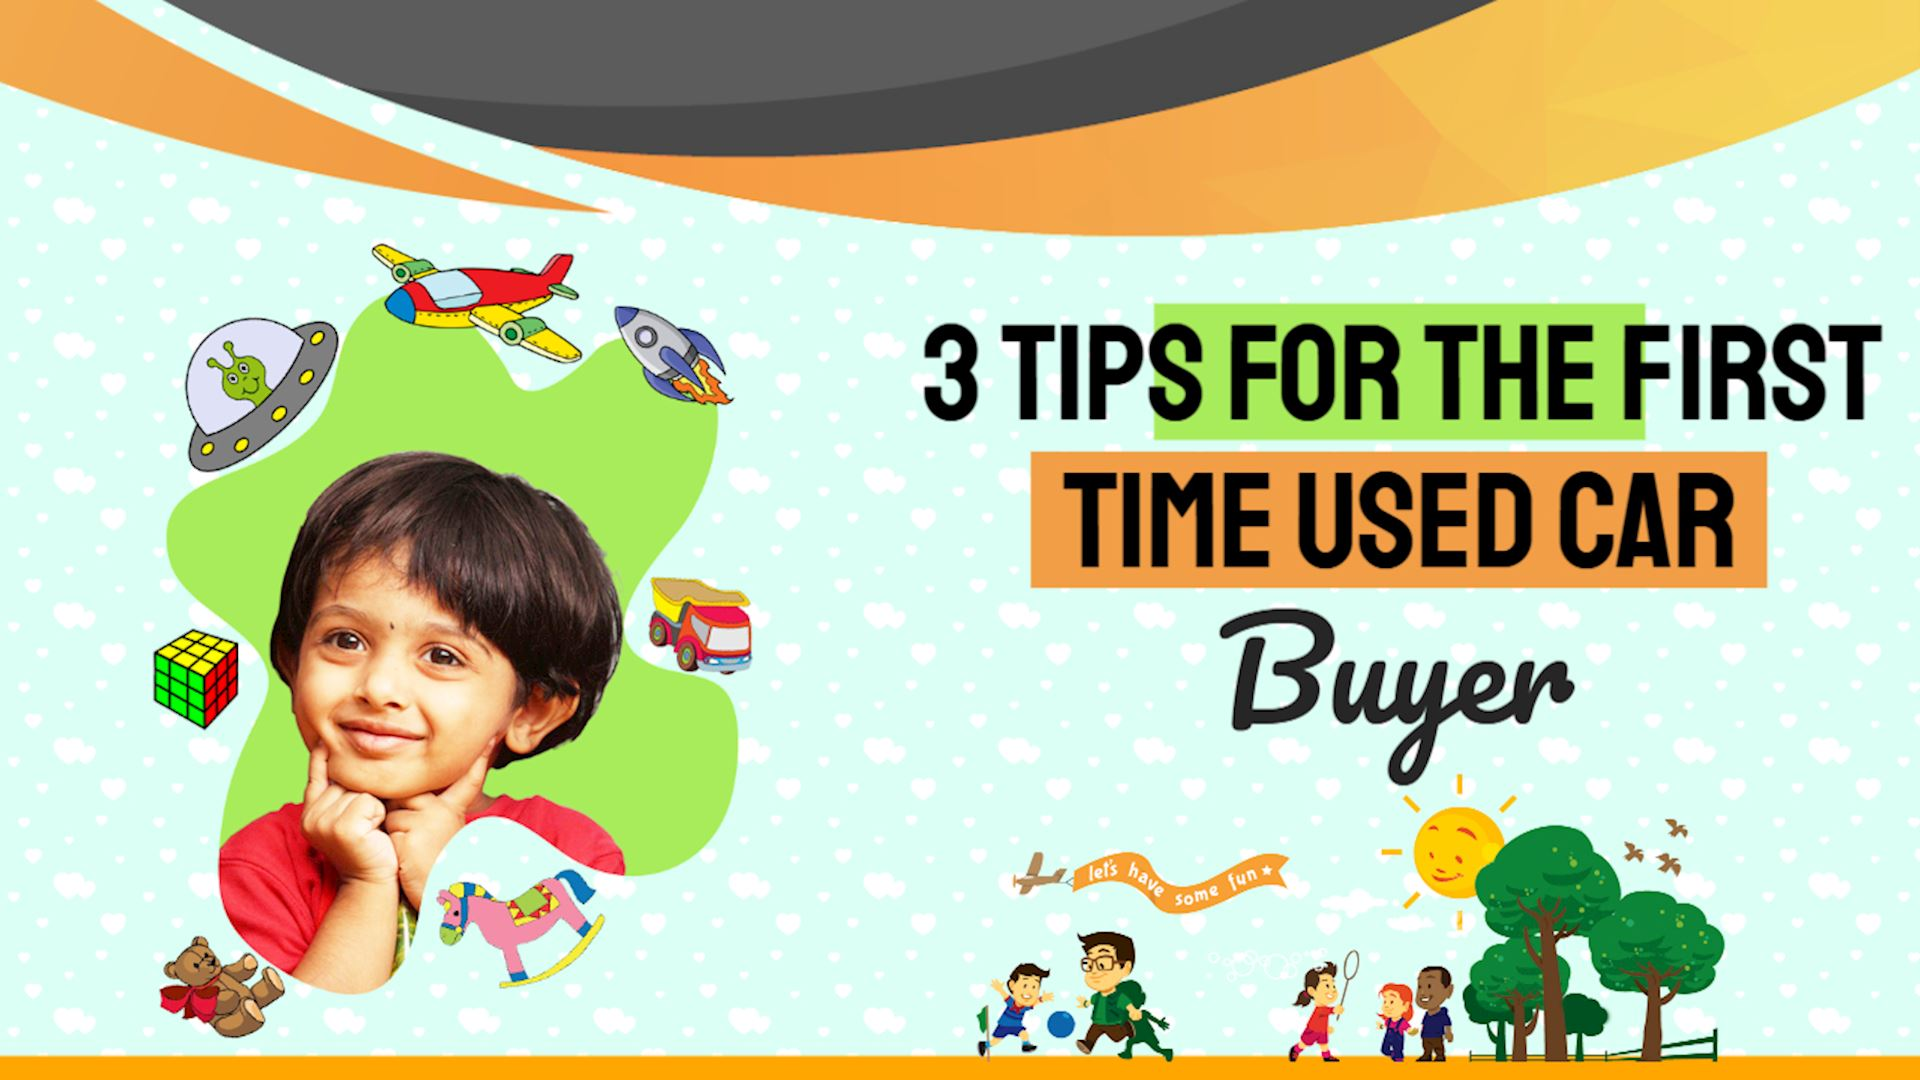 3 Tips for the First Time Used Car Buyer